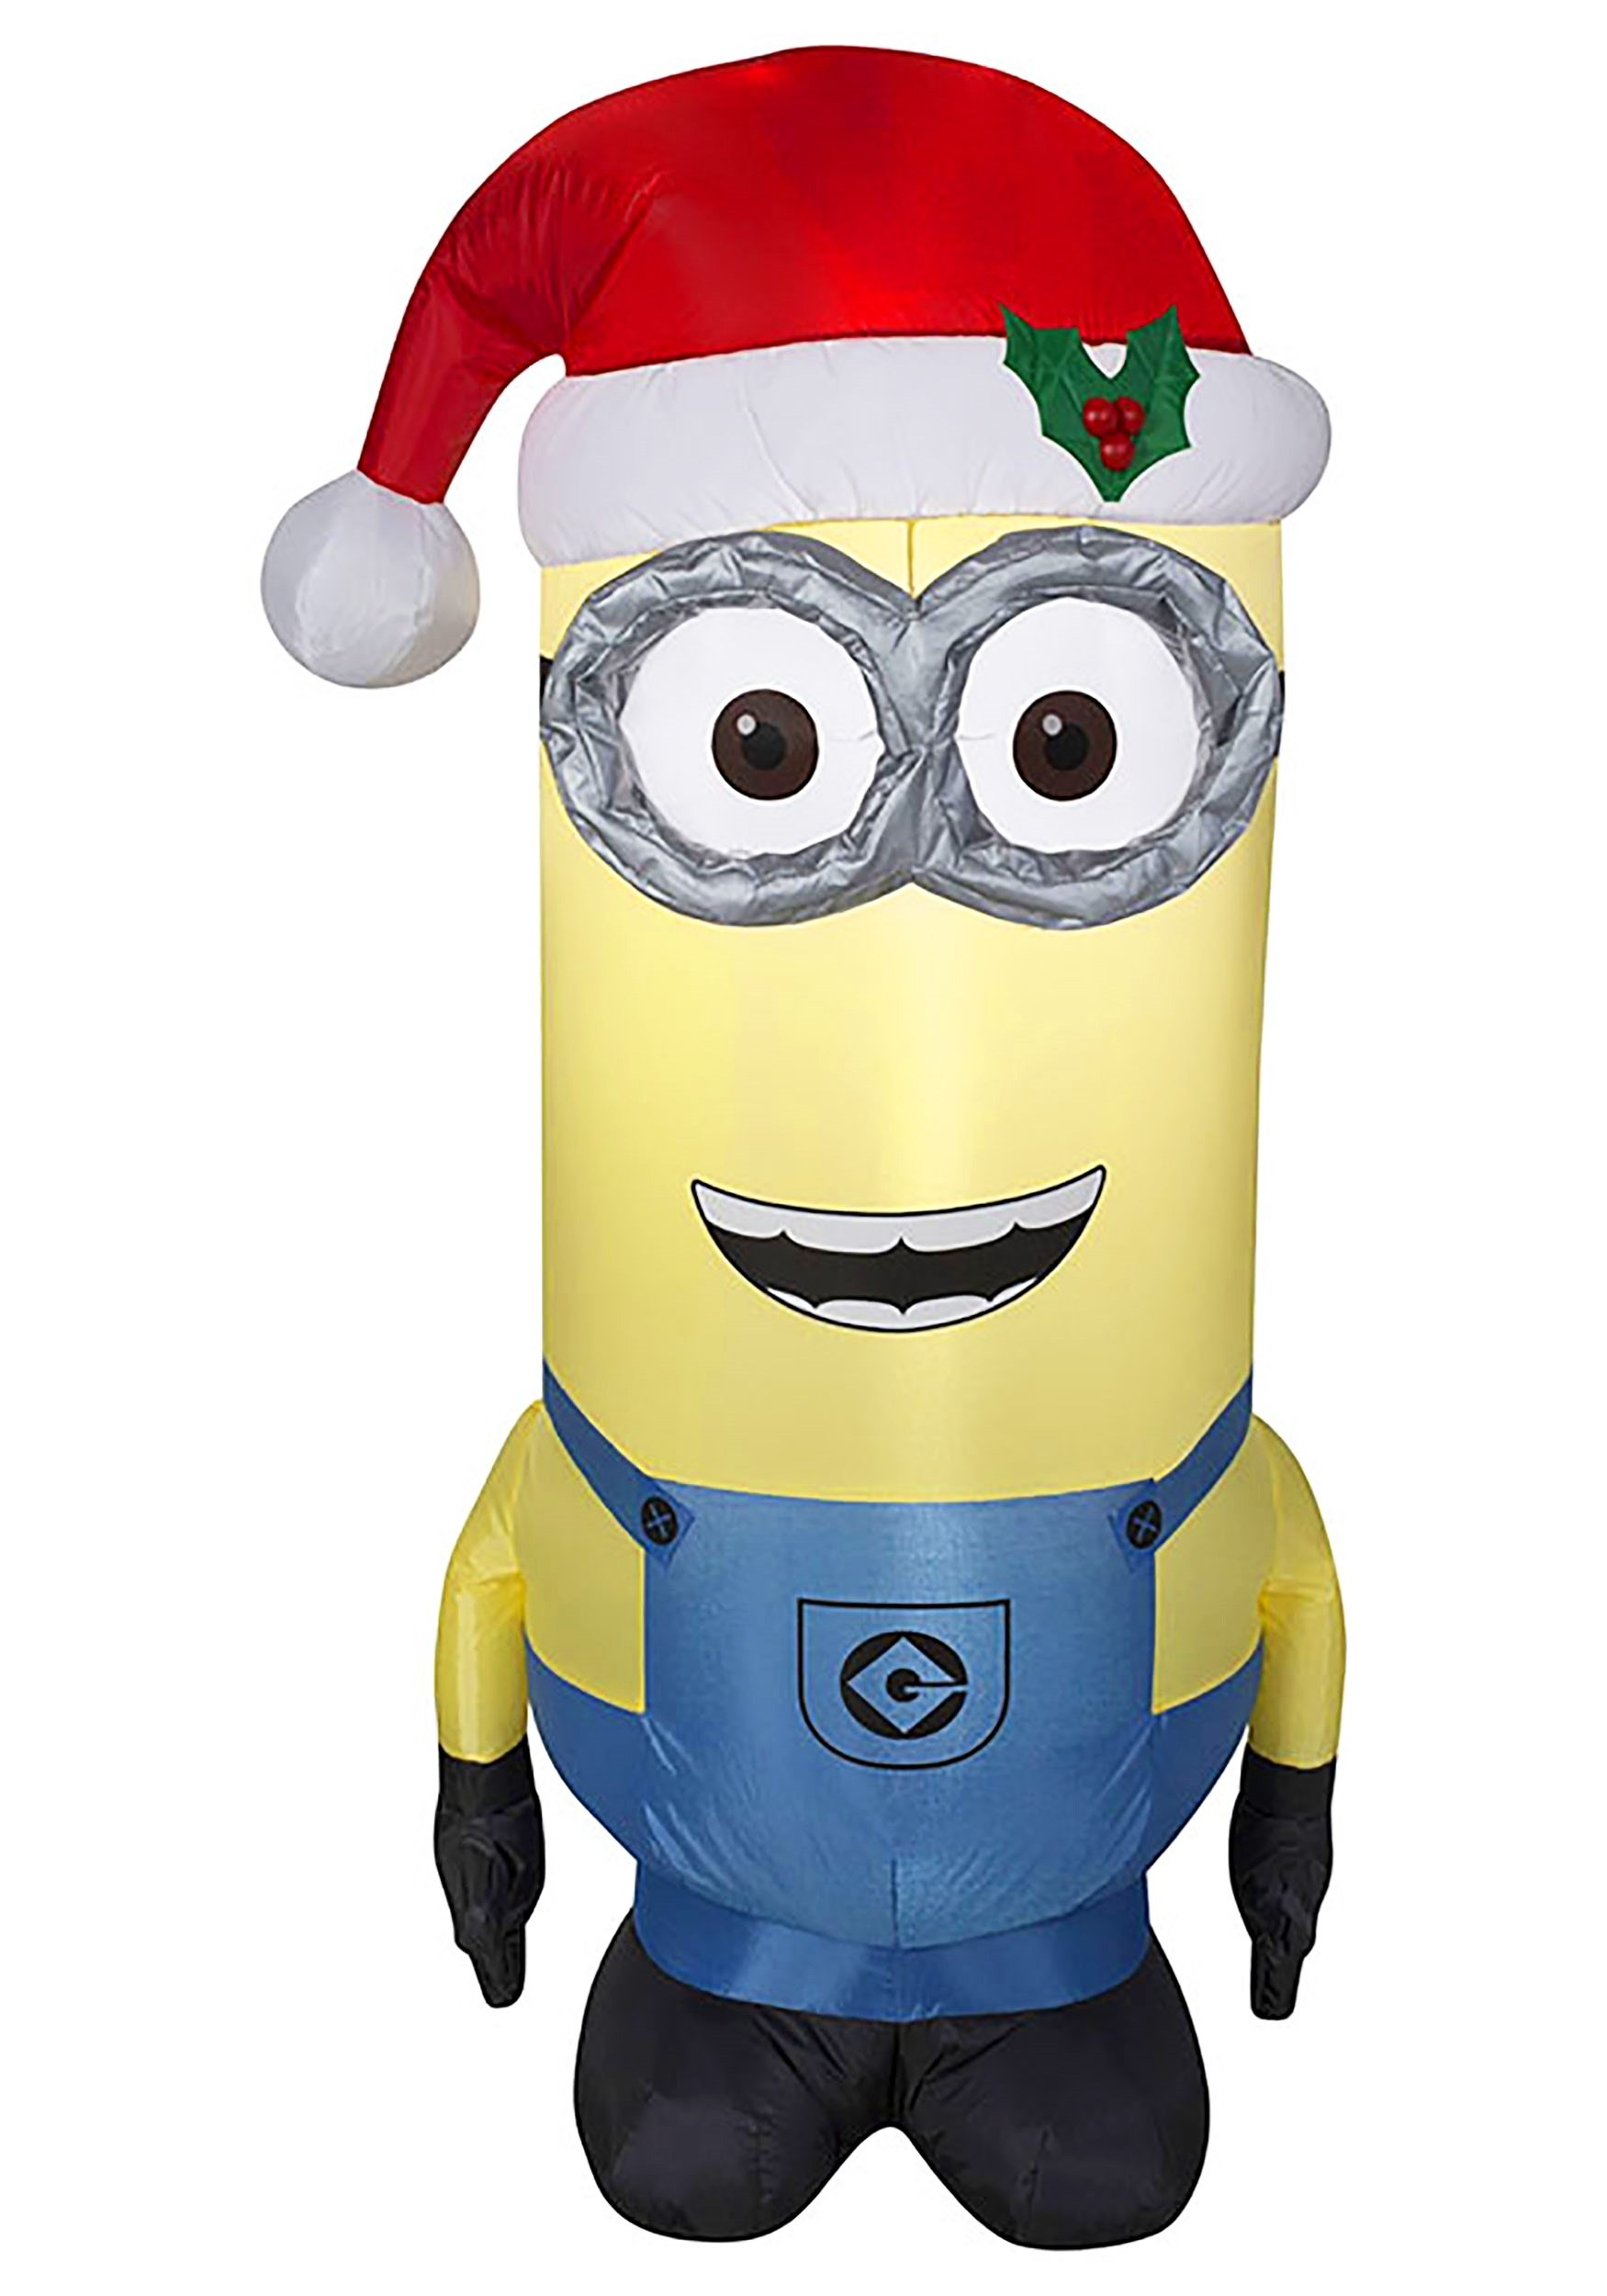 Despicable Me Inflatable Kevin Minion In Santa Hat Holiday Decor